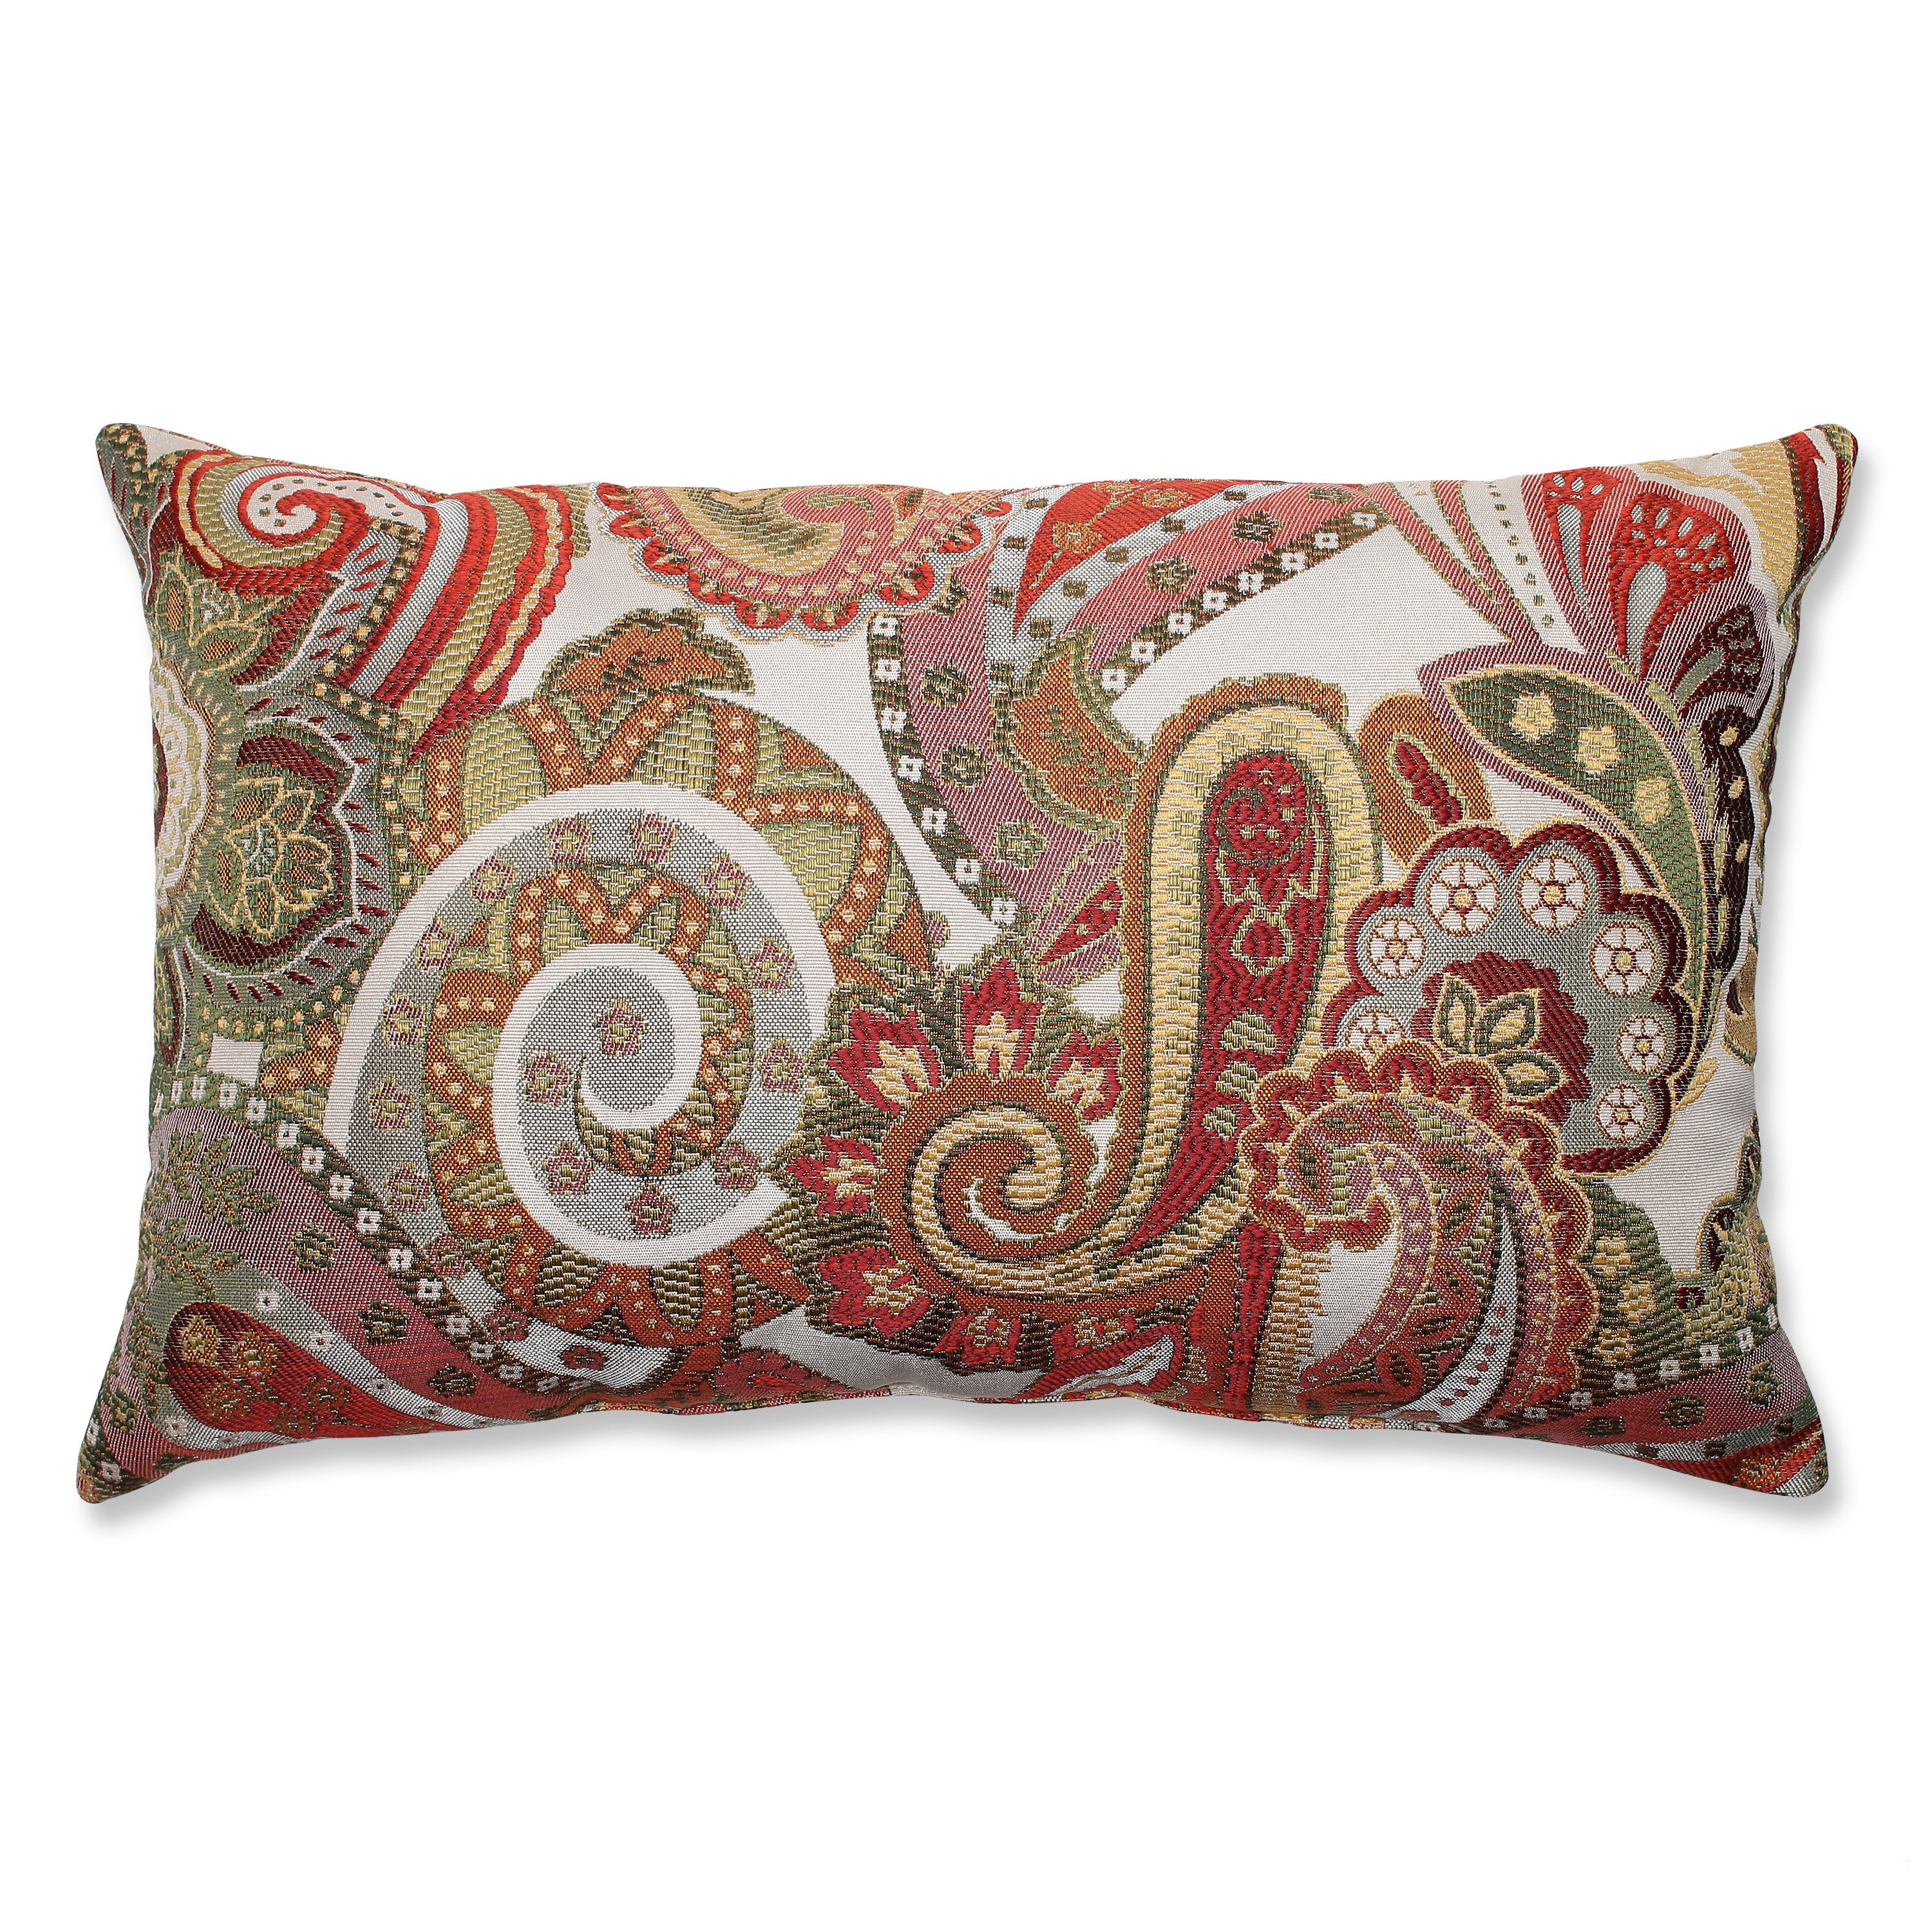 Size 24 x 24 throw pillows for less overstock falaconquin